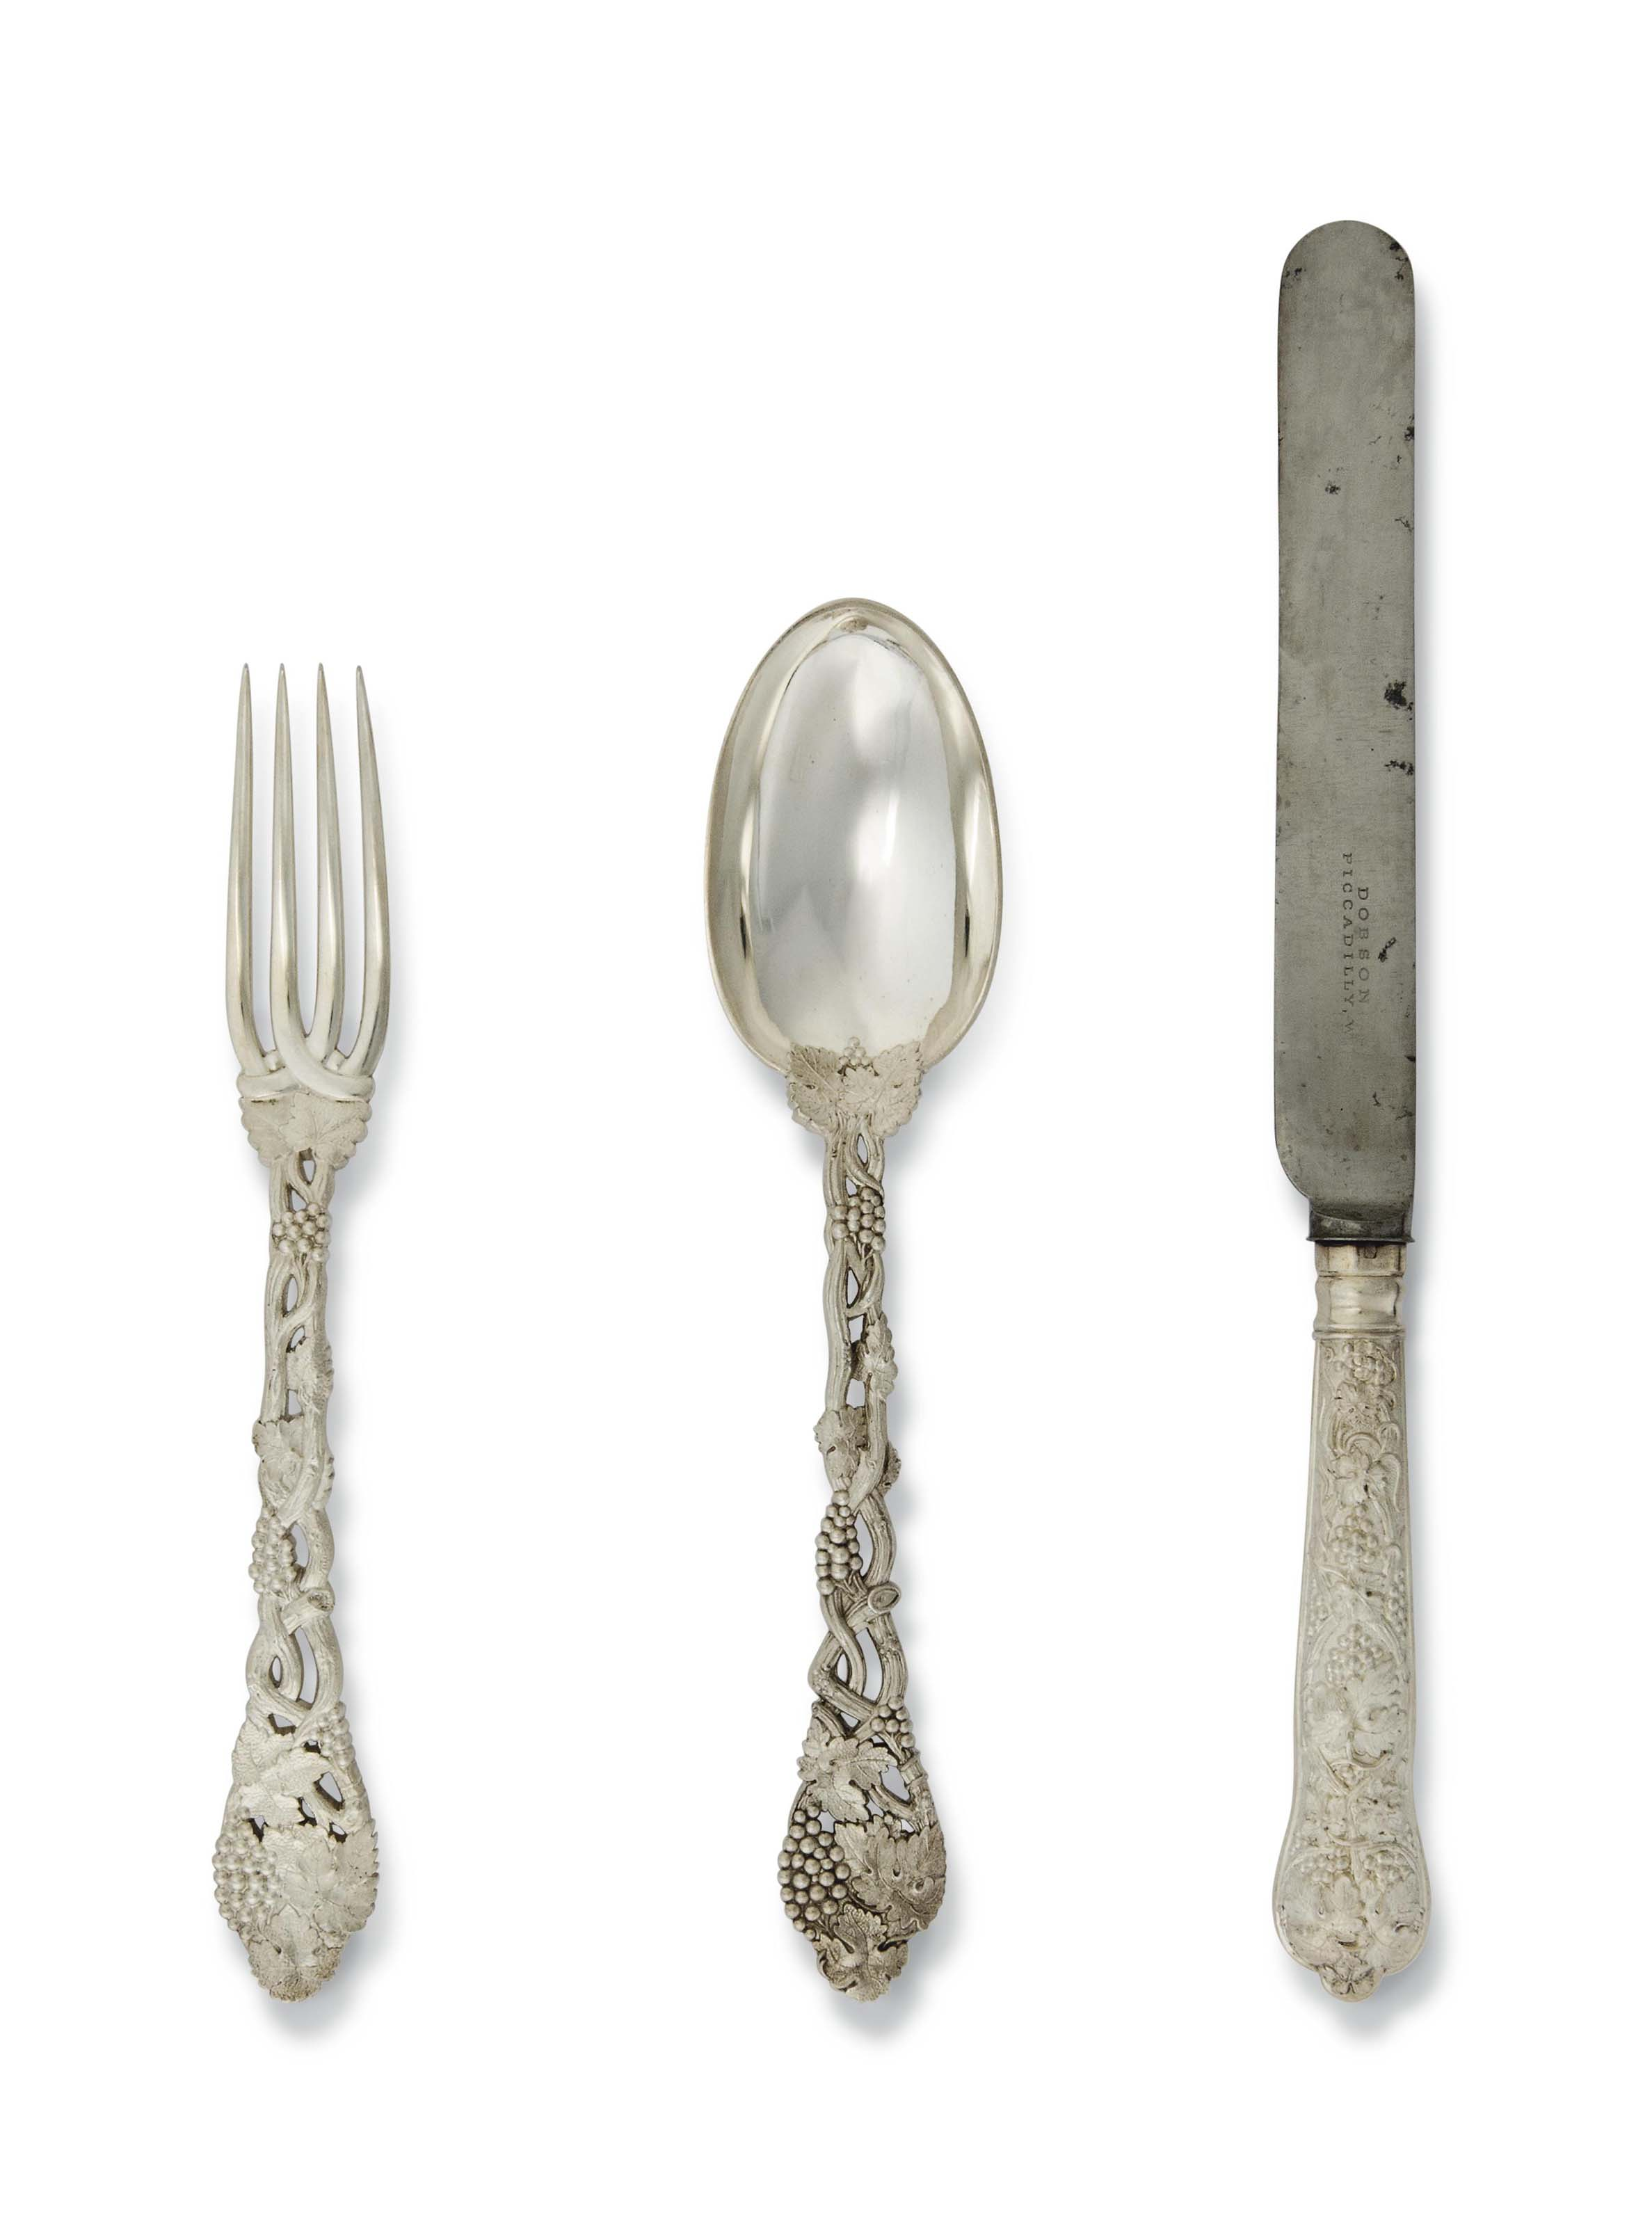 AN EDWARDIAN SILVER TABLE SERVICE OF OPENWORK GRAPEVINE PATTERN